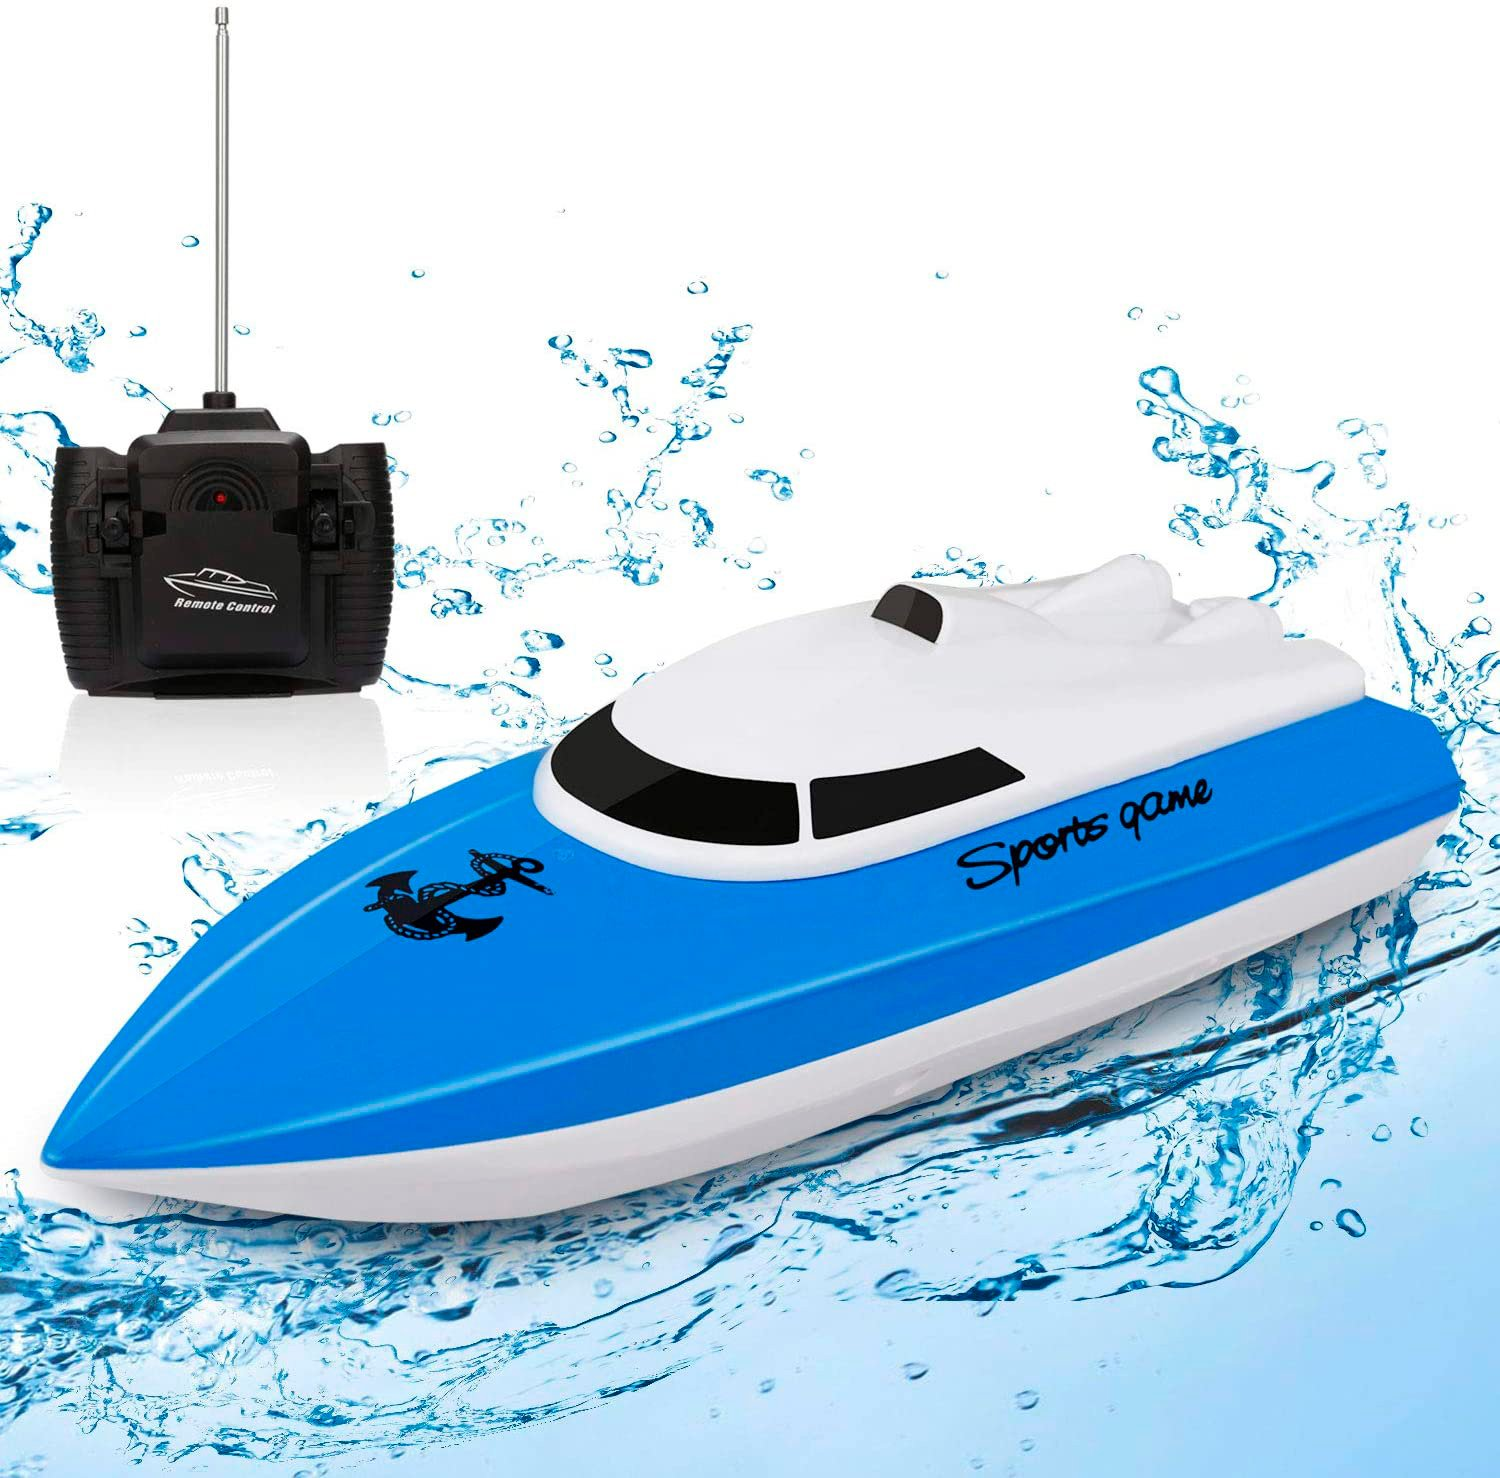 SJJX RC Boat review